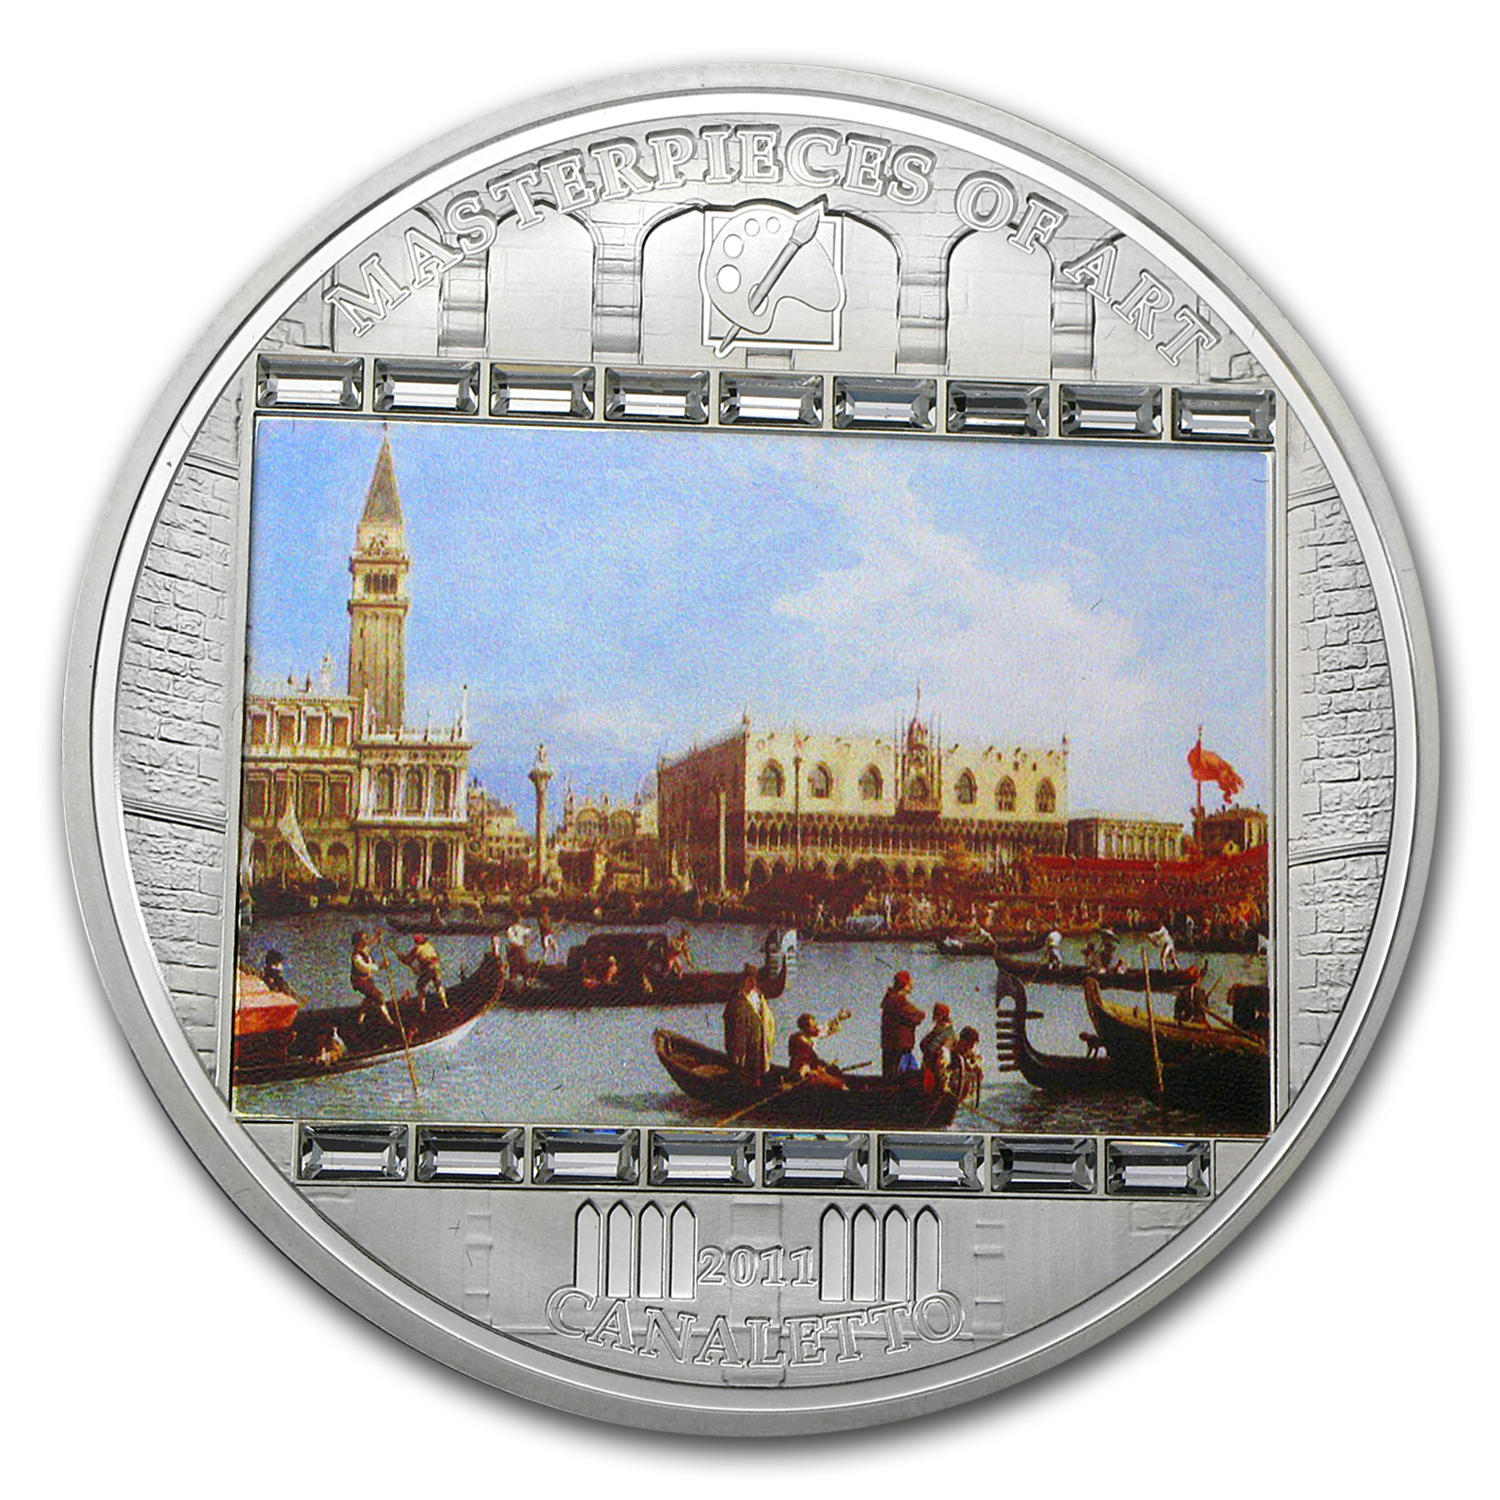 Cook Islands 2011 Silver $20 Masterpieces of Art - Canaletto